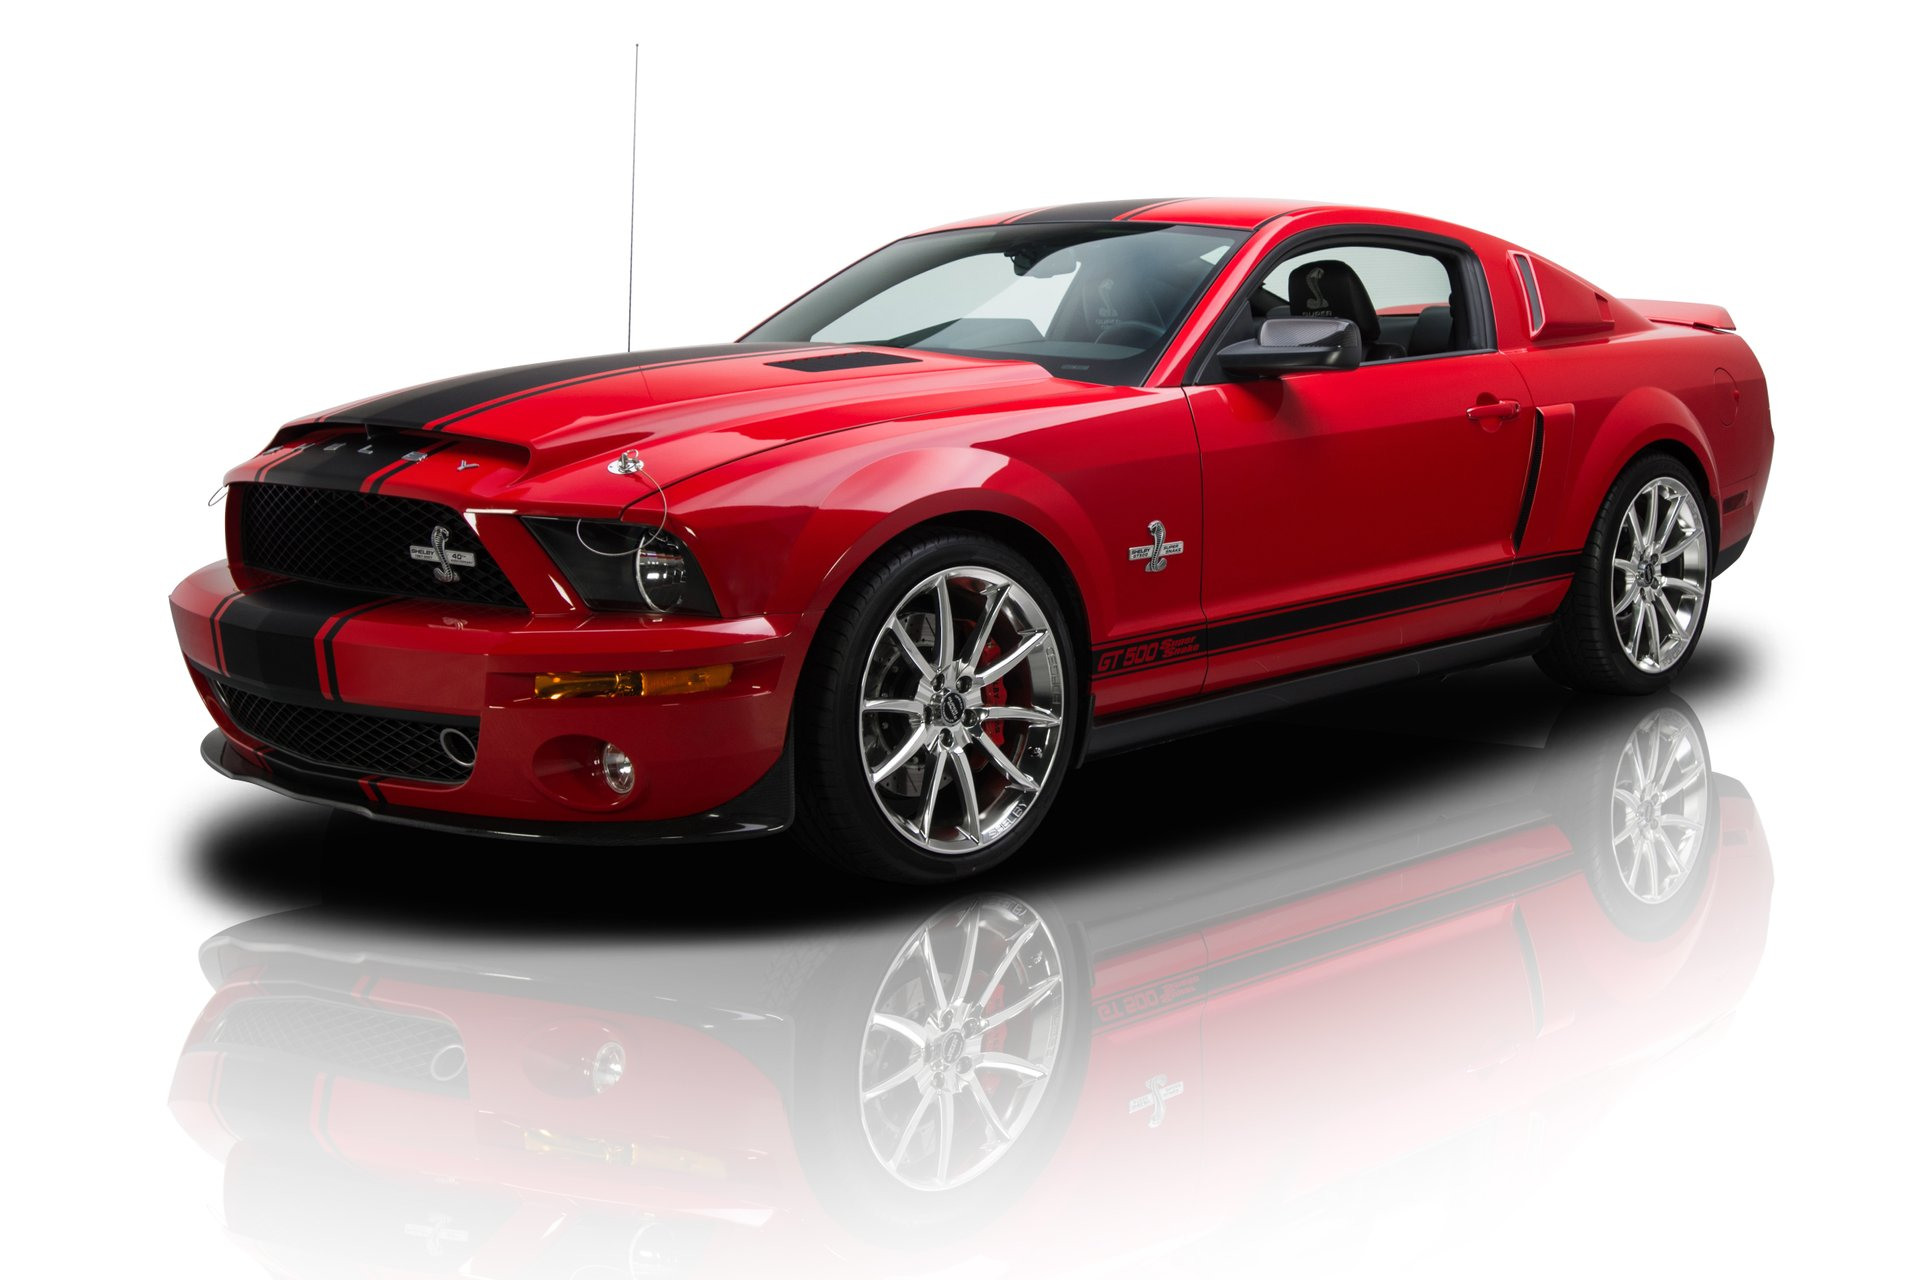 2007 ford mustang gt500 super snake